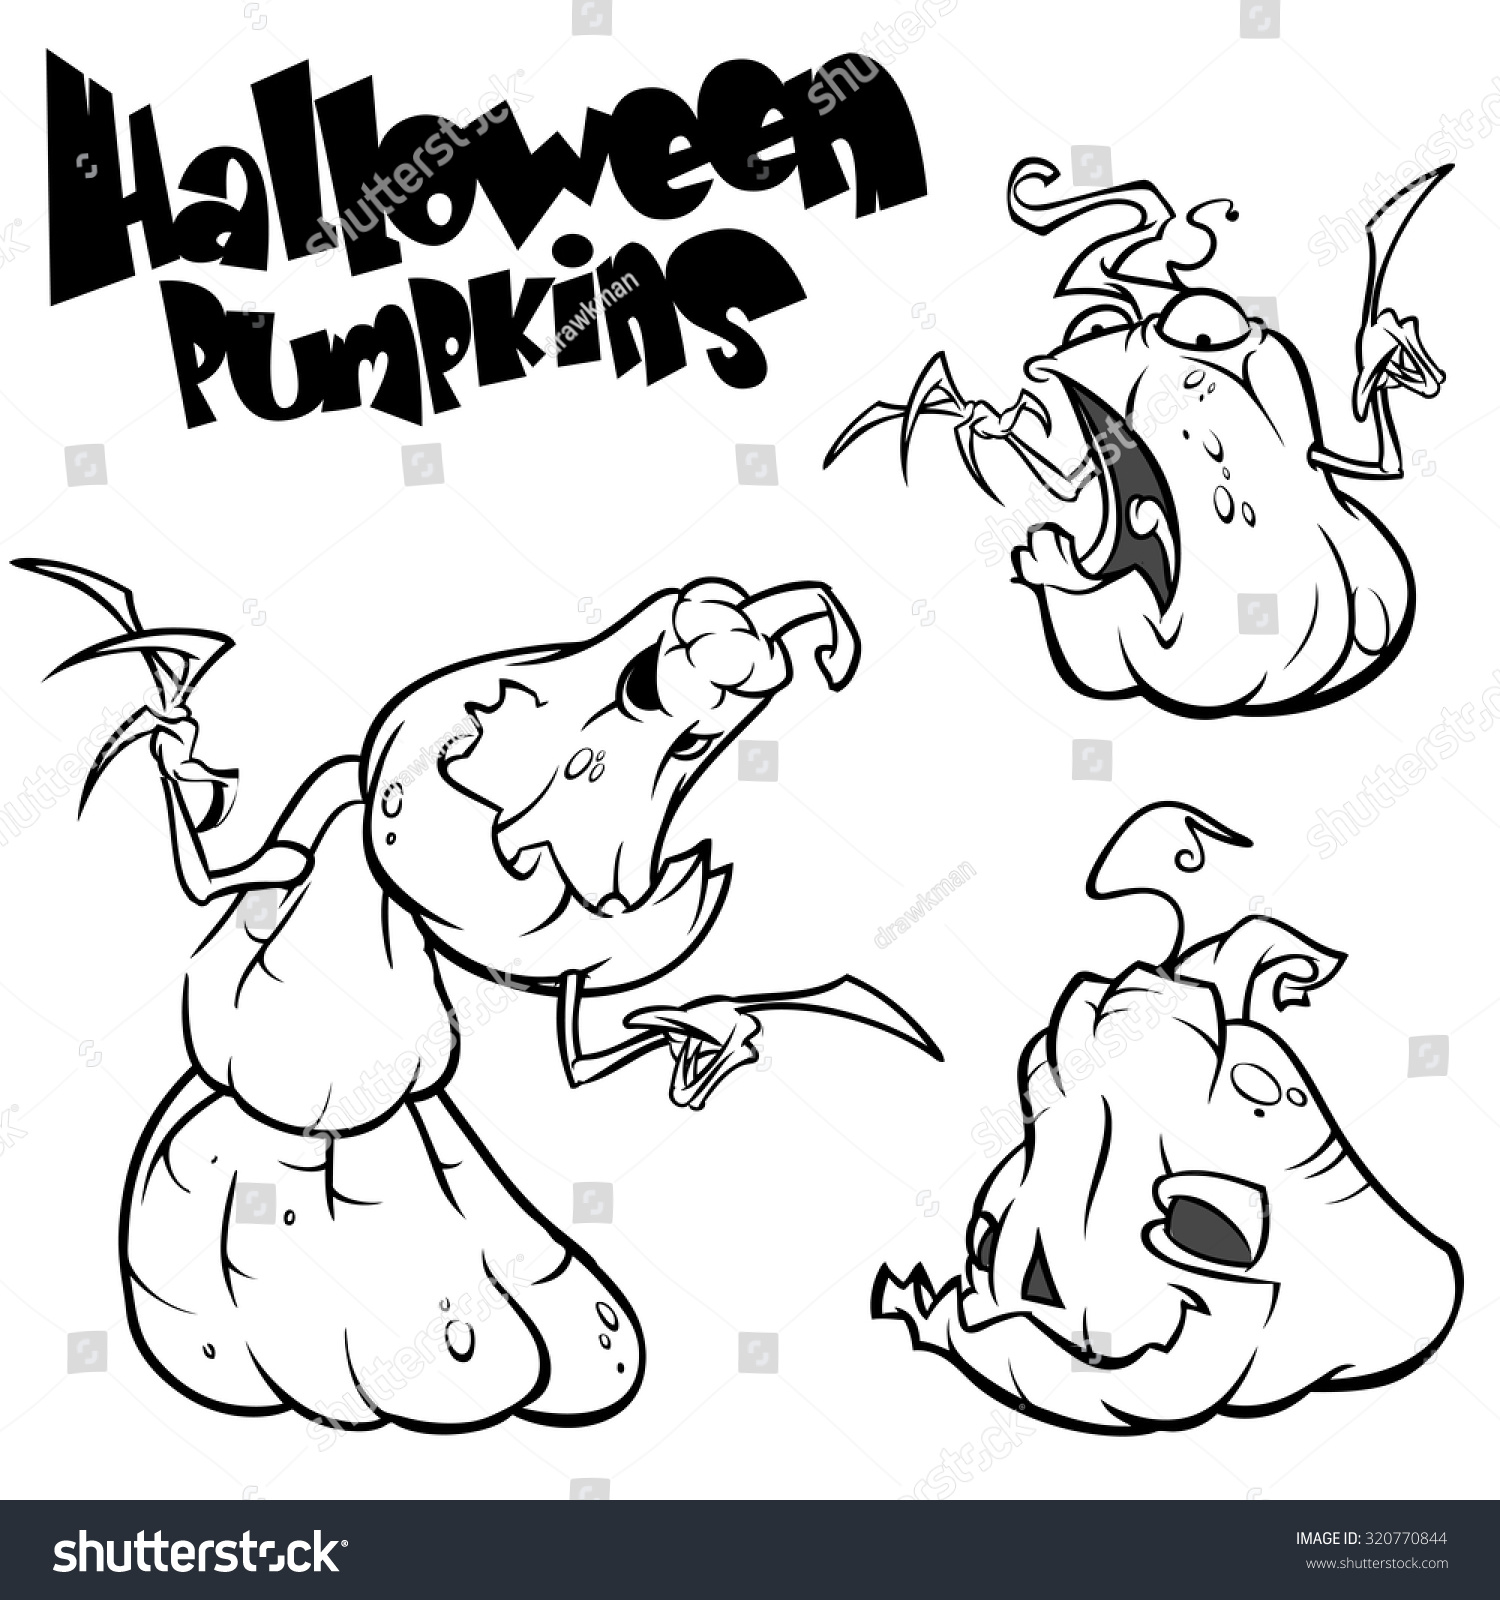 vector set back white scaring halloween stock vector (royalty free